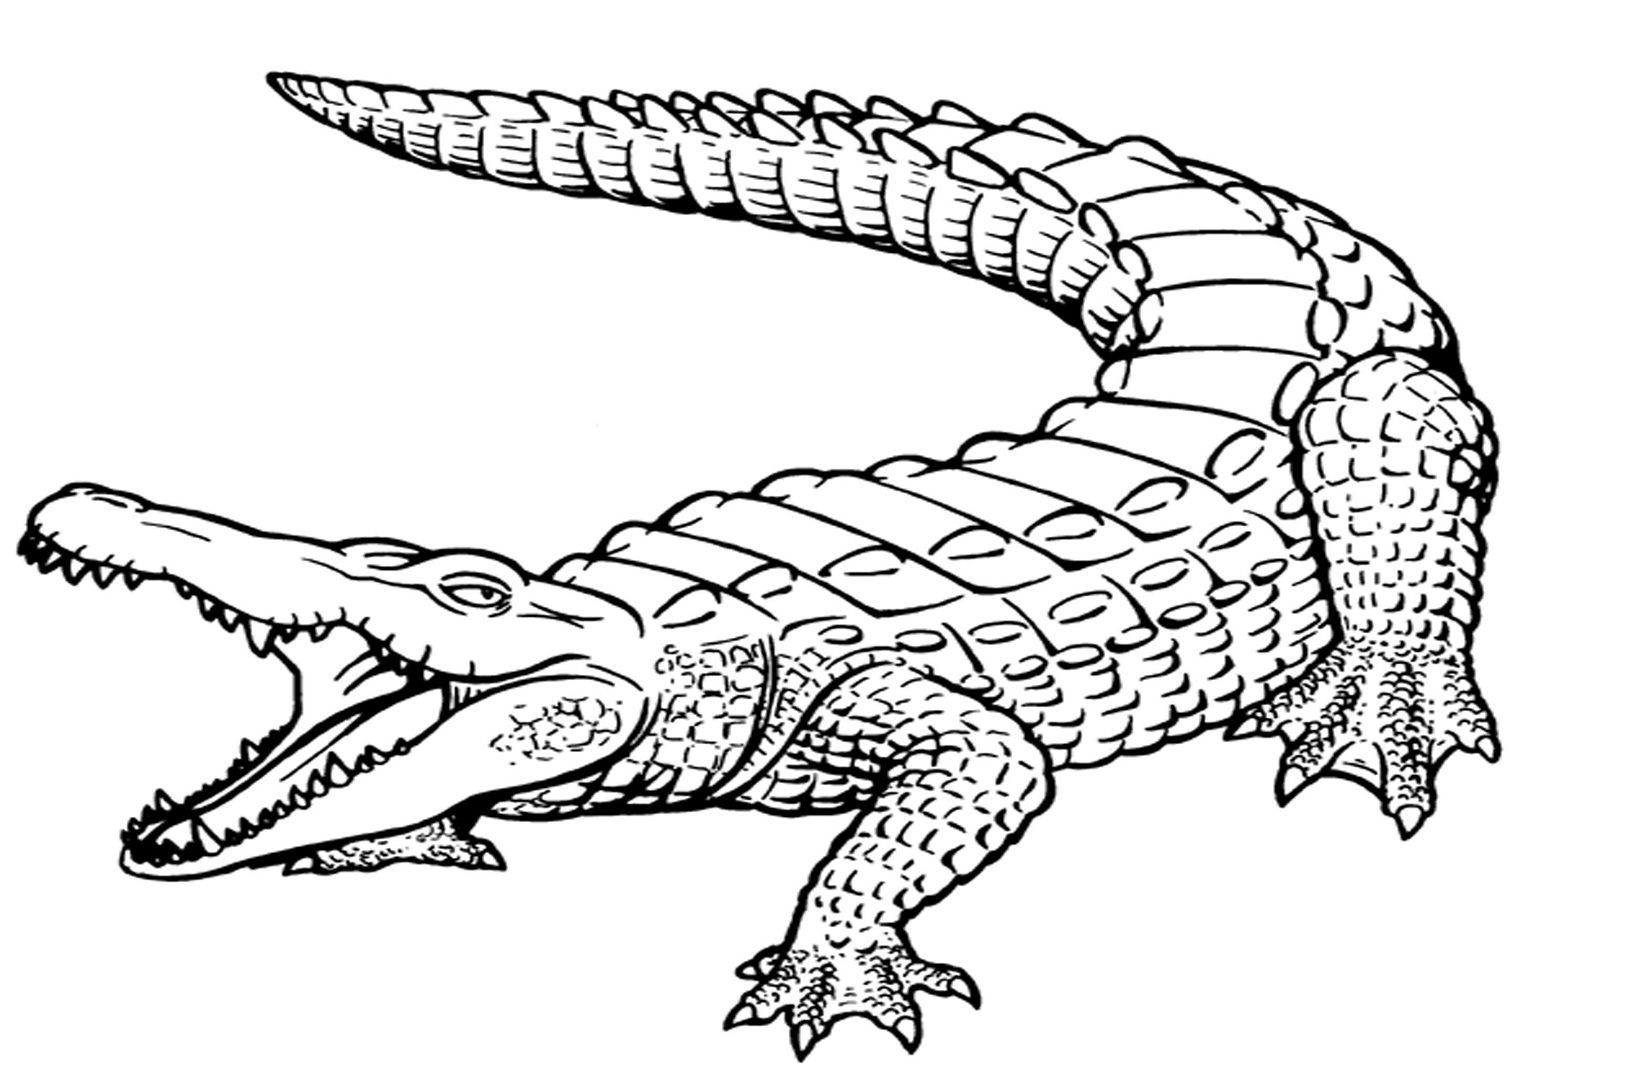 Alligator Coloring Sheet in 2019 | Coloring pages, Detailed ...